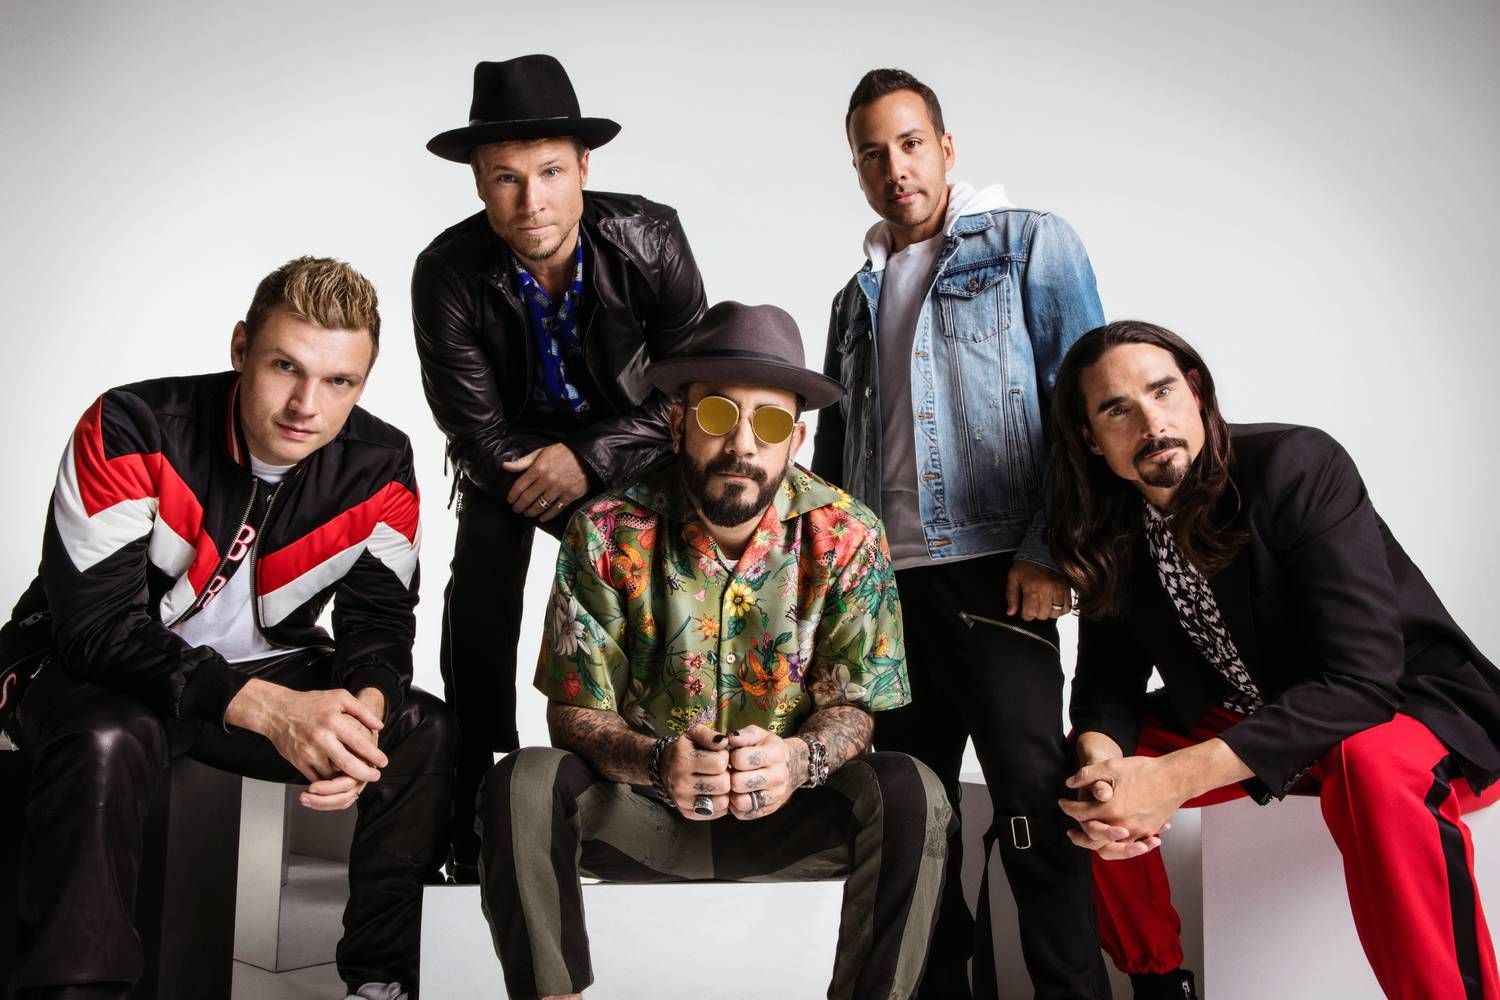 Backstreet Boys Score First No. 1 Album in Nearly 20 Years on Billboard 200 Chart With 'DNA'